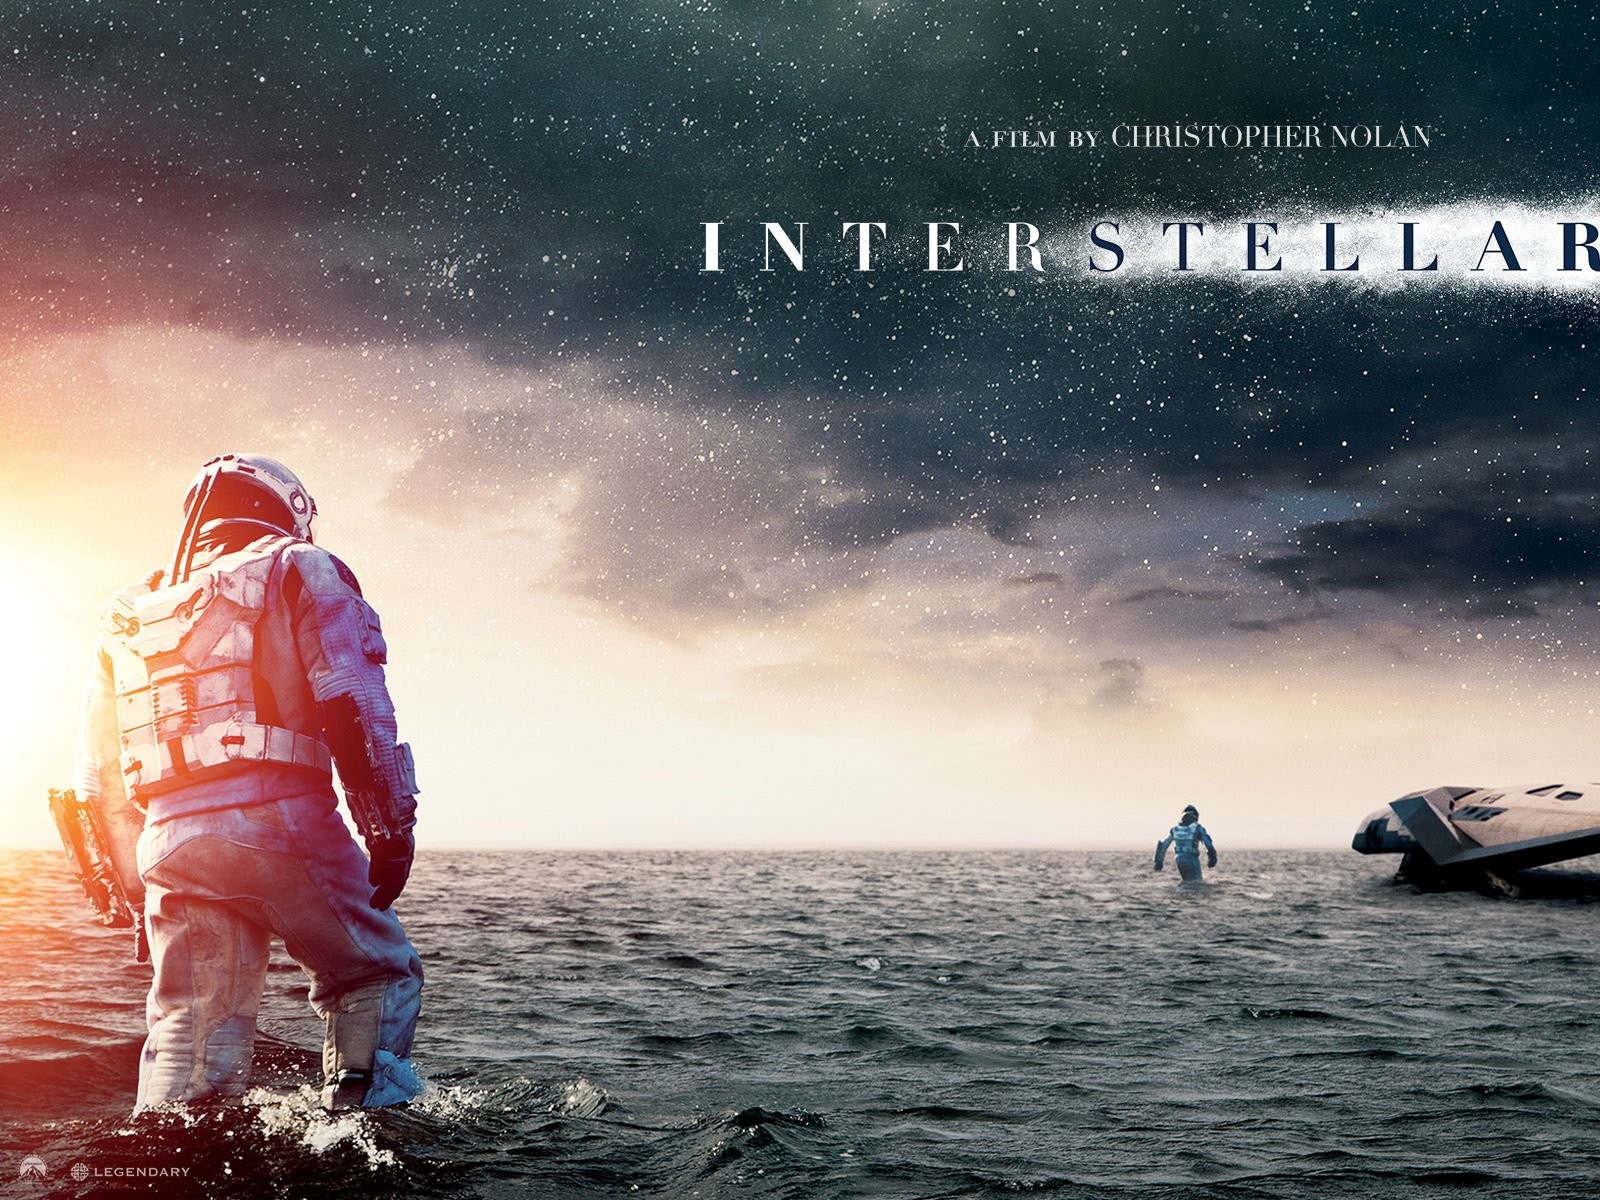 Interstellar The Movie Wallpaper for Desktop 1600x1200